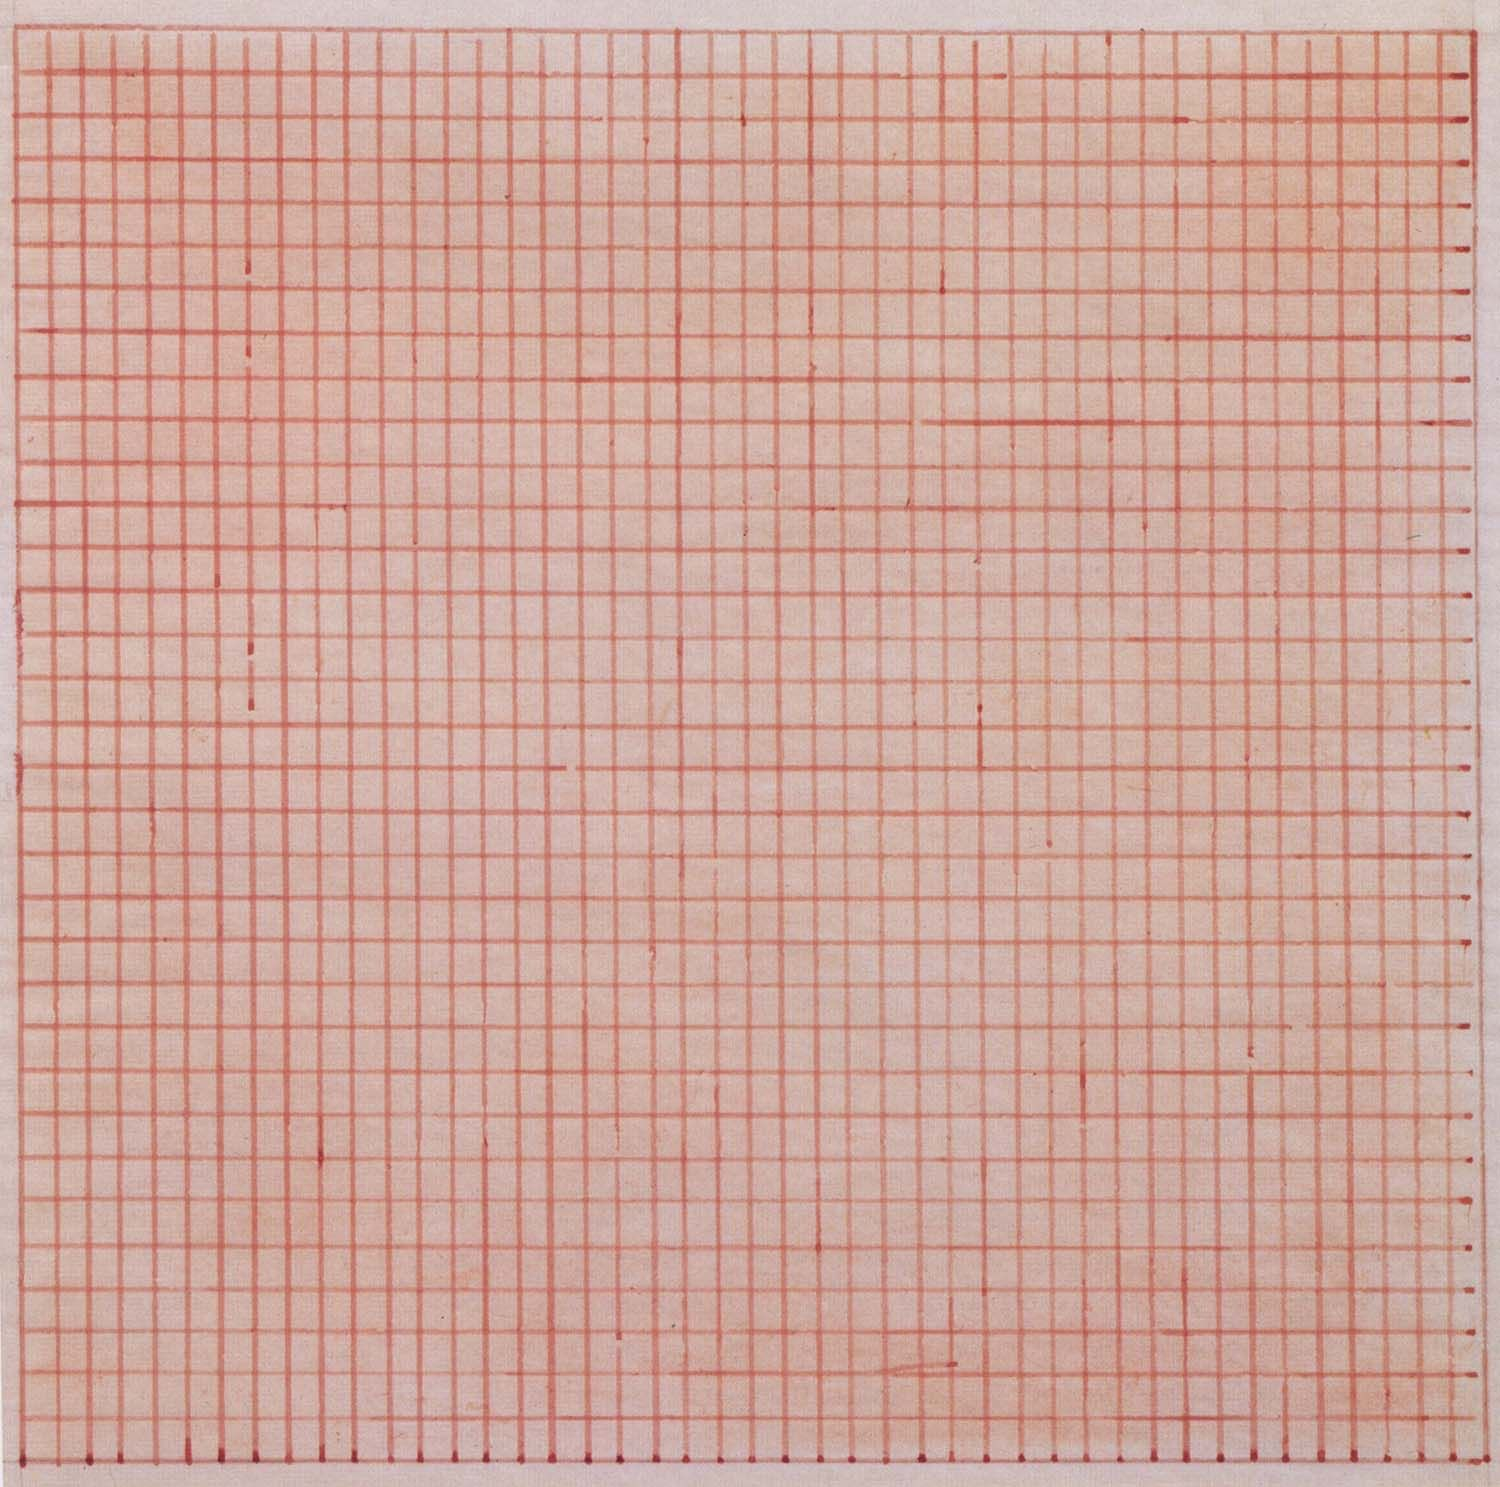 Agnes Martins Untitled 1963 gridded painting